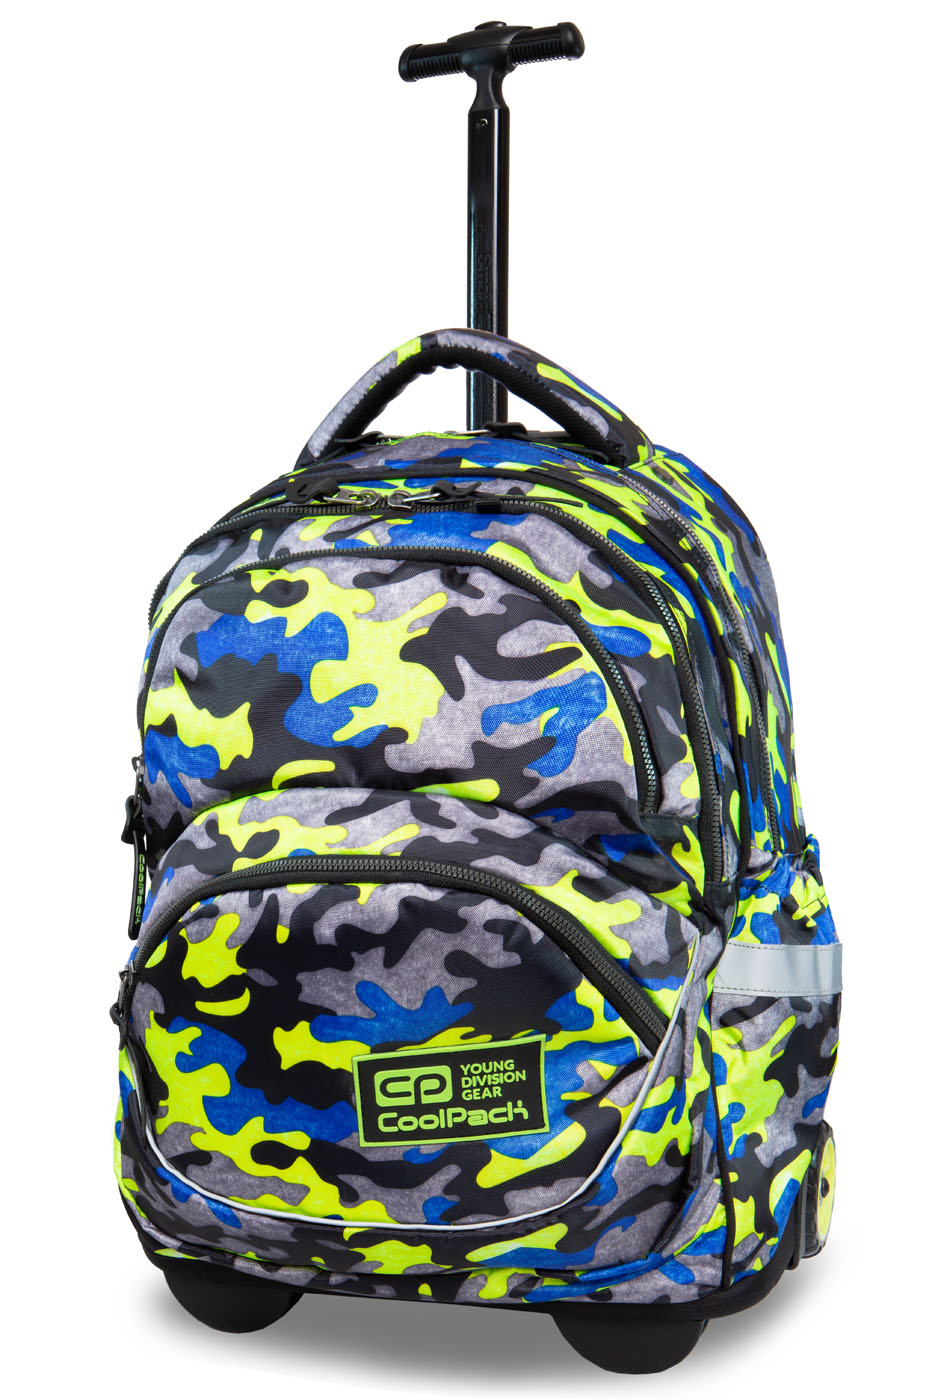 Coolpack   starr  rygsæk med hjul   camo fusion yellow